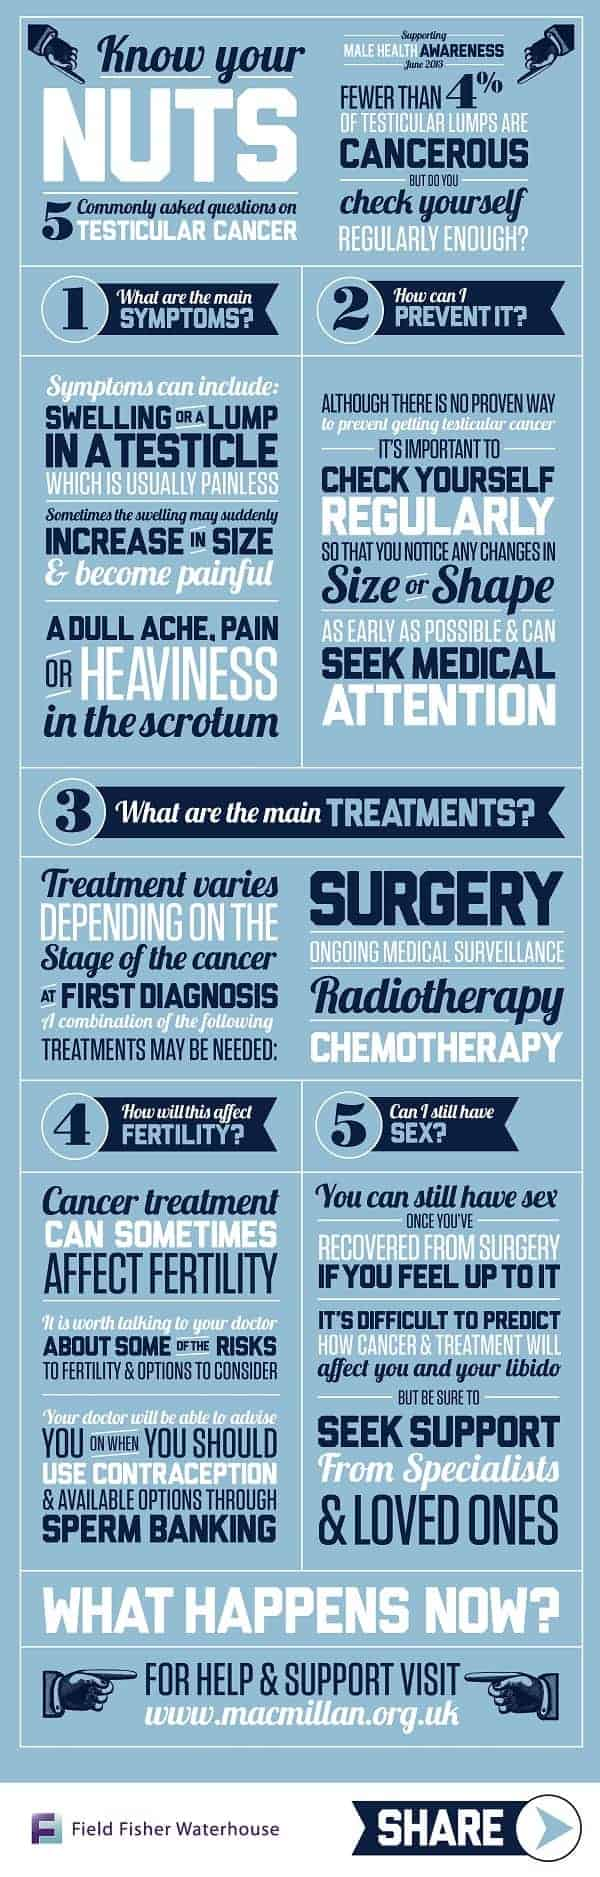 Know Your Nuts An FAQ on Testicluar Cancer